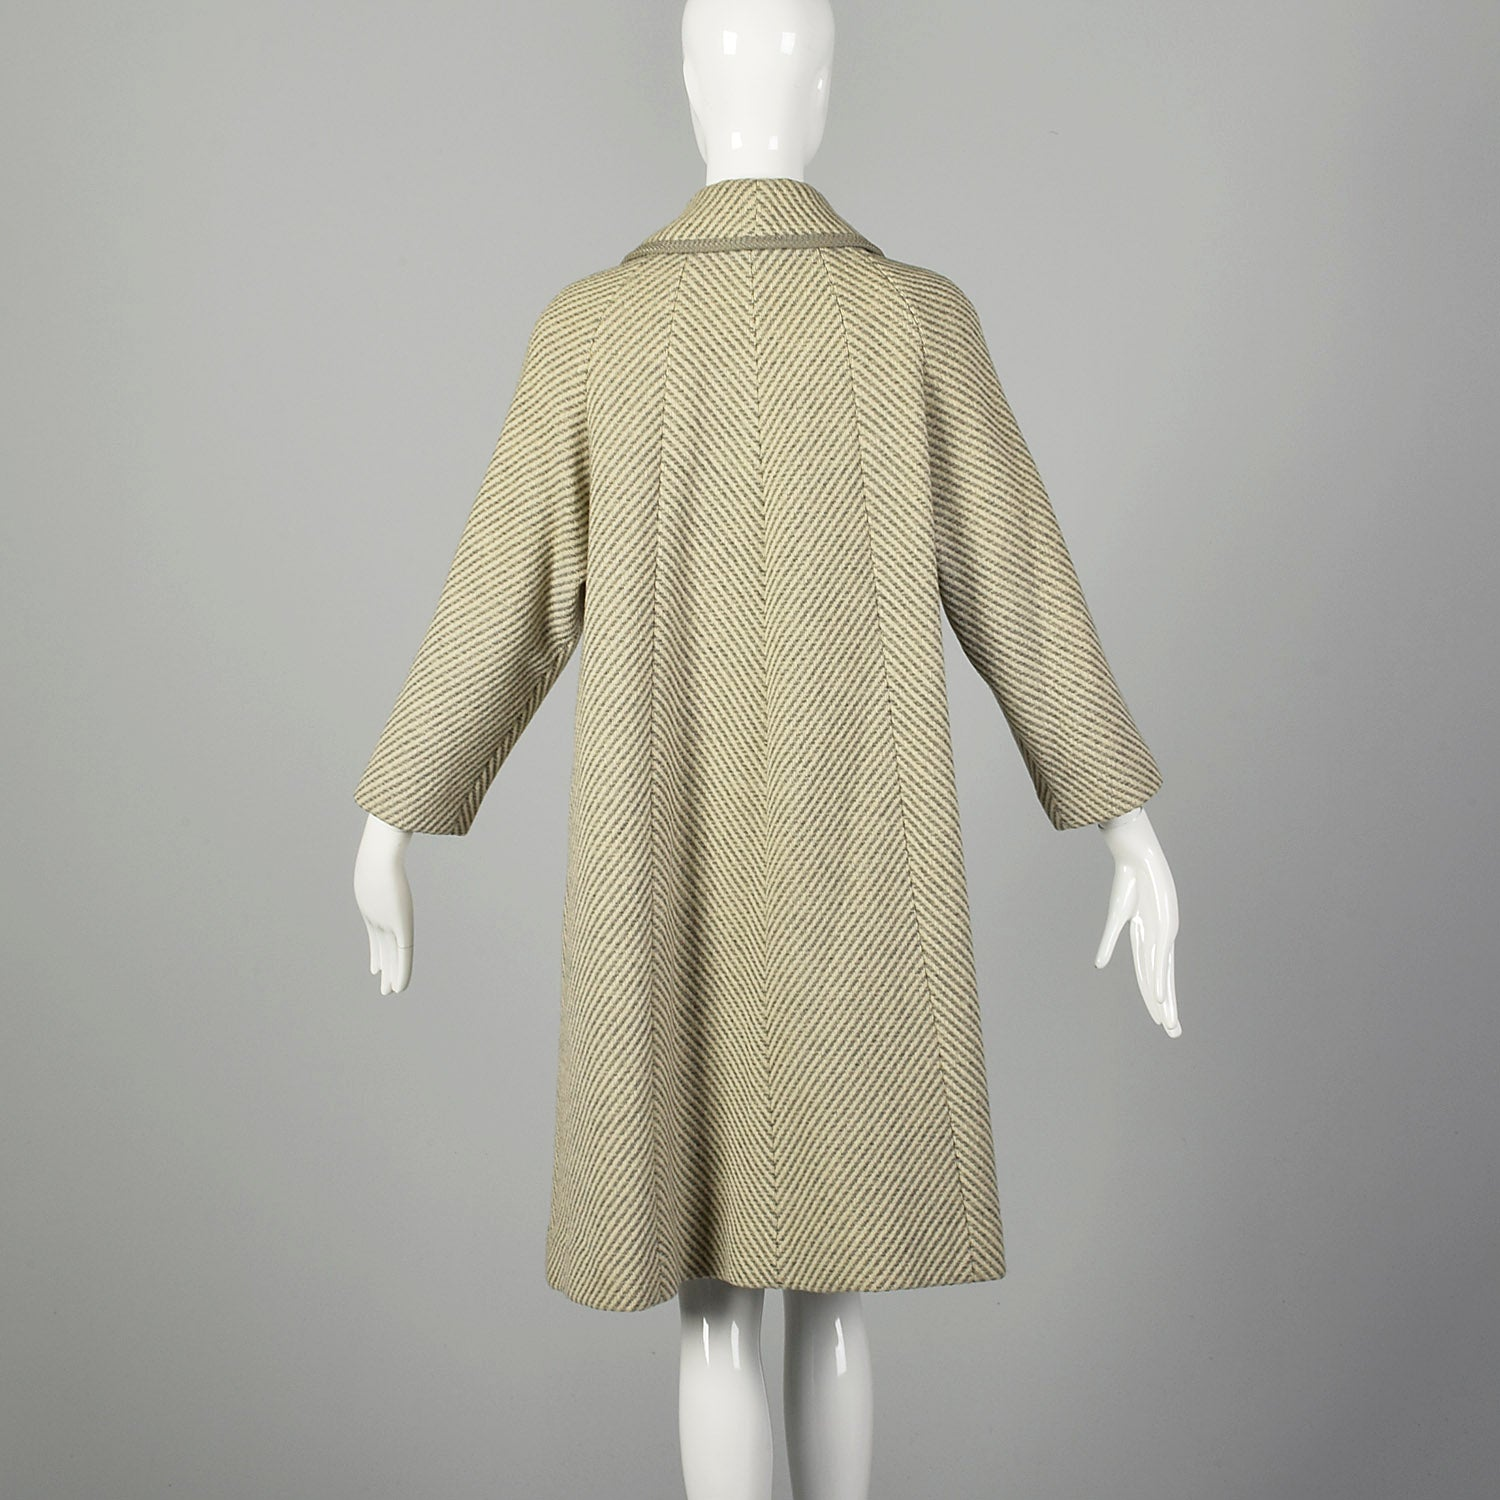 Large 1950s Swing Coat Gray Herringbone Stripe Wool Tweed Peter Pan Collar Winter Outerwear